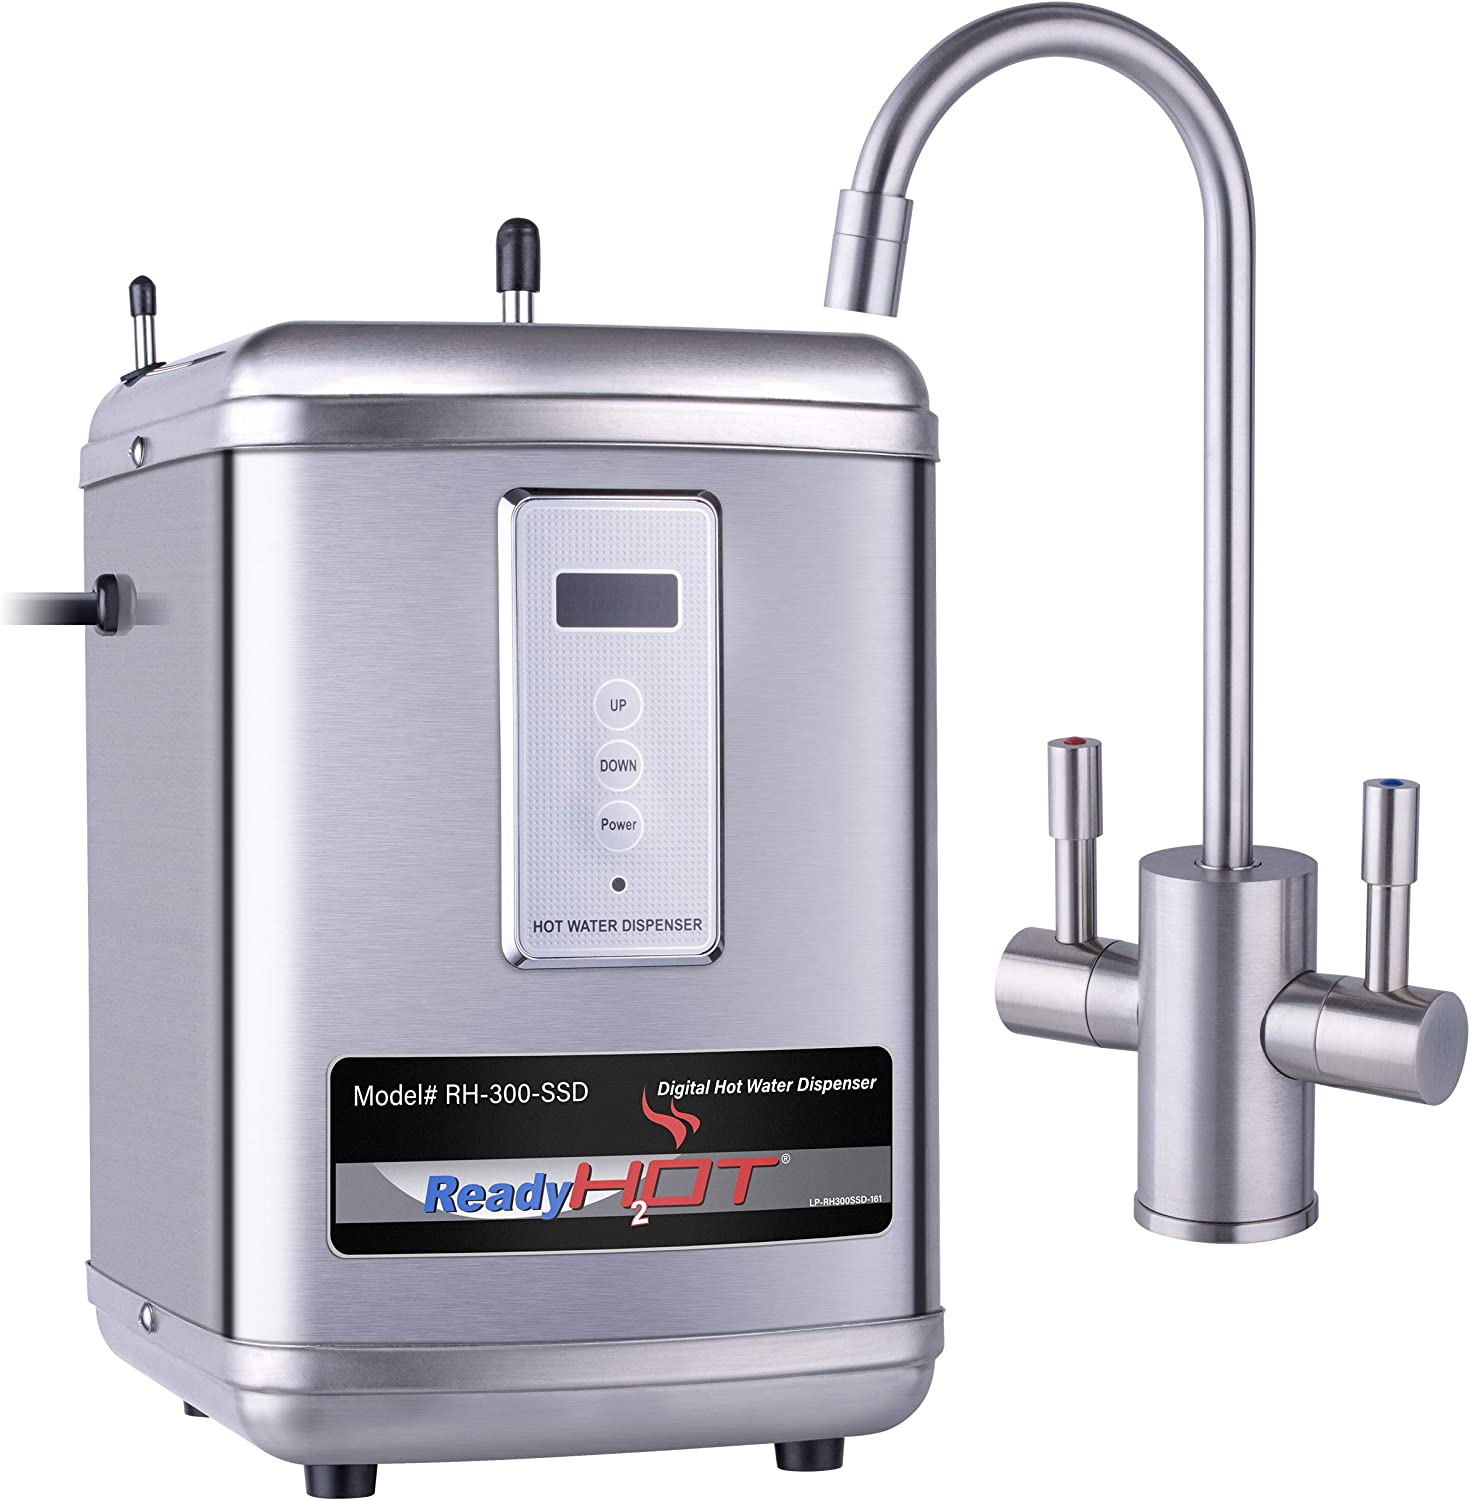 Ready Hot Water Dispenser, Digital Display Hot Water Dispenser, Includes Brushed Nickel Hot and Cold Water Faucet